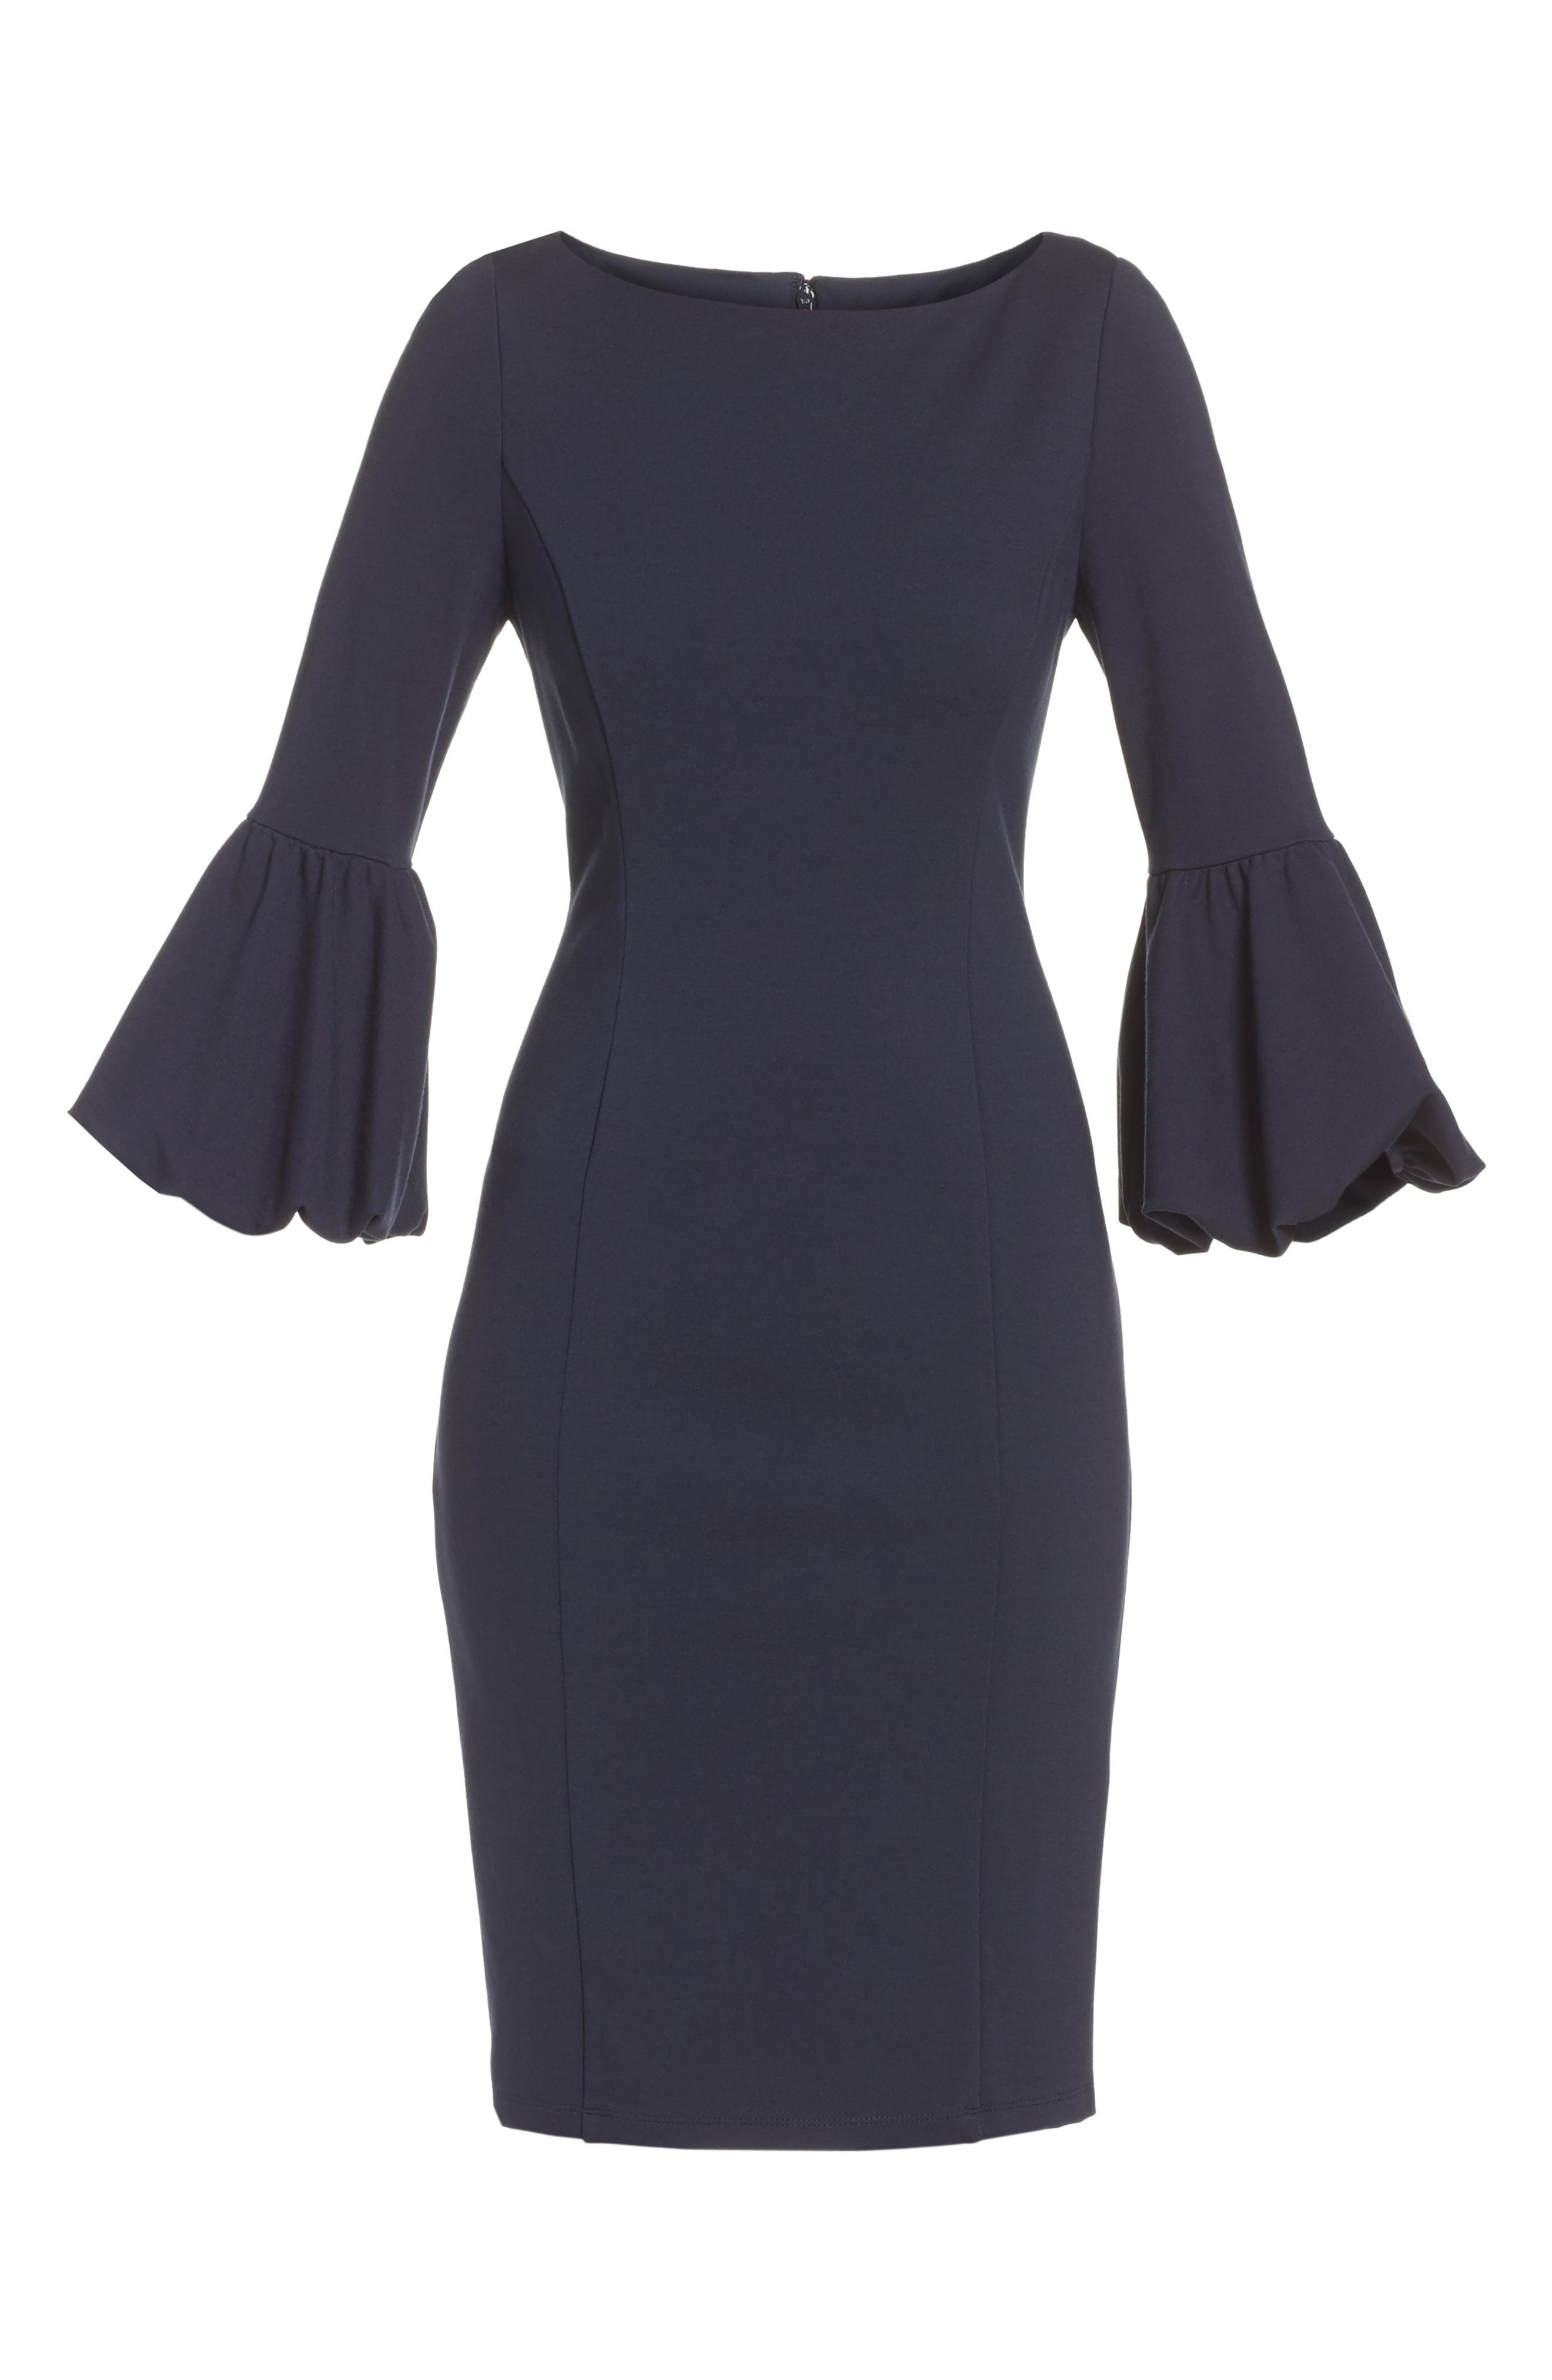 Ruffle Sleeve Sheath Dress,                             Alternate thumbnail 7, color,                             NAVY